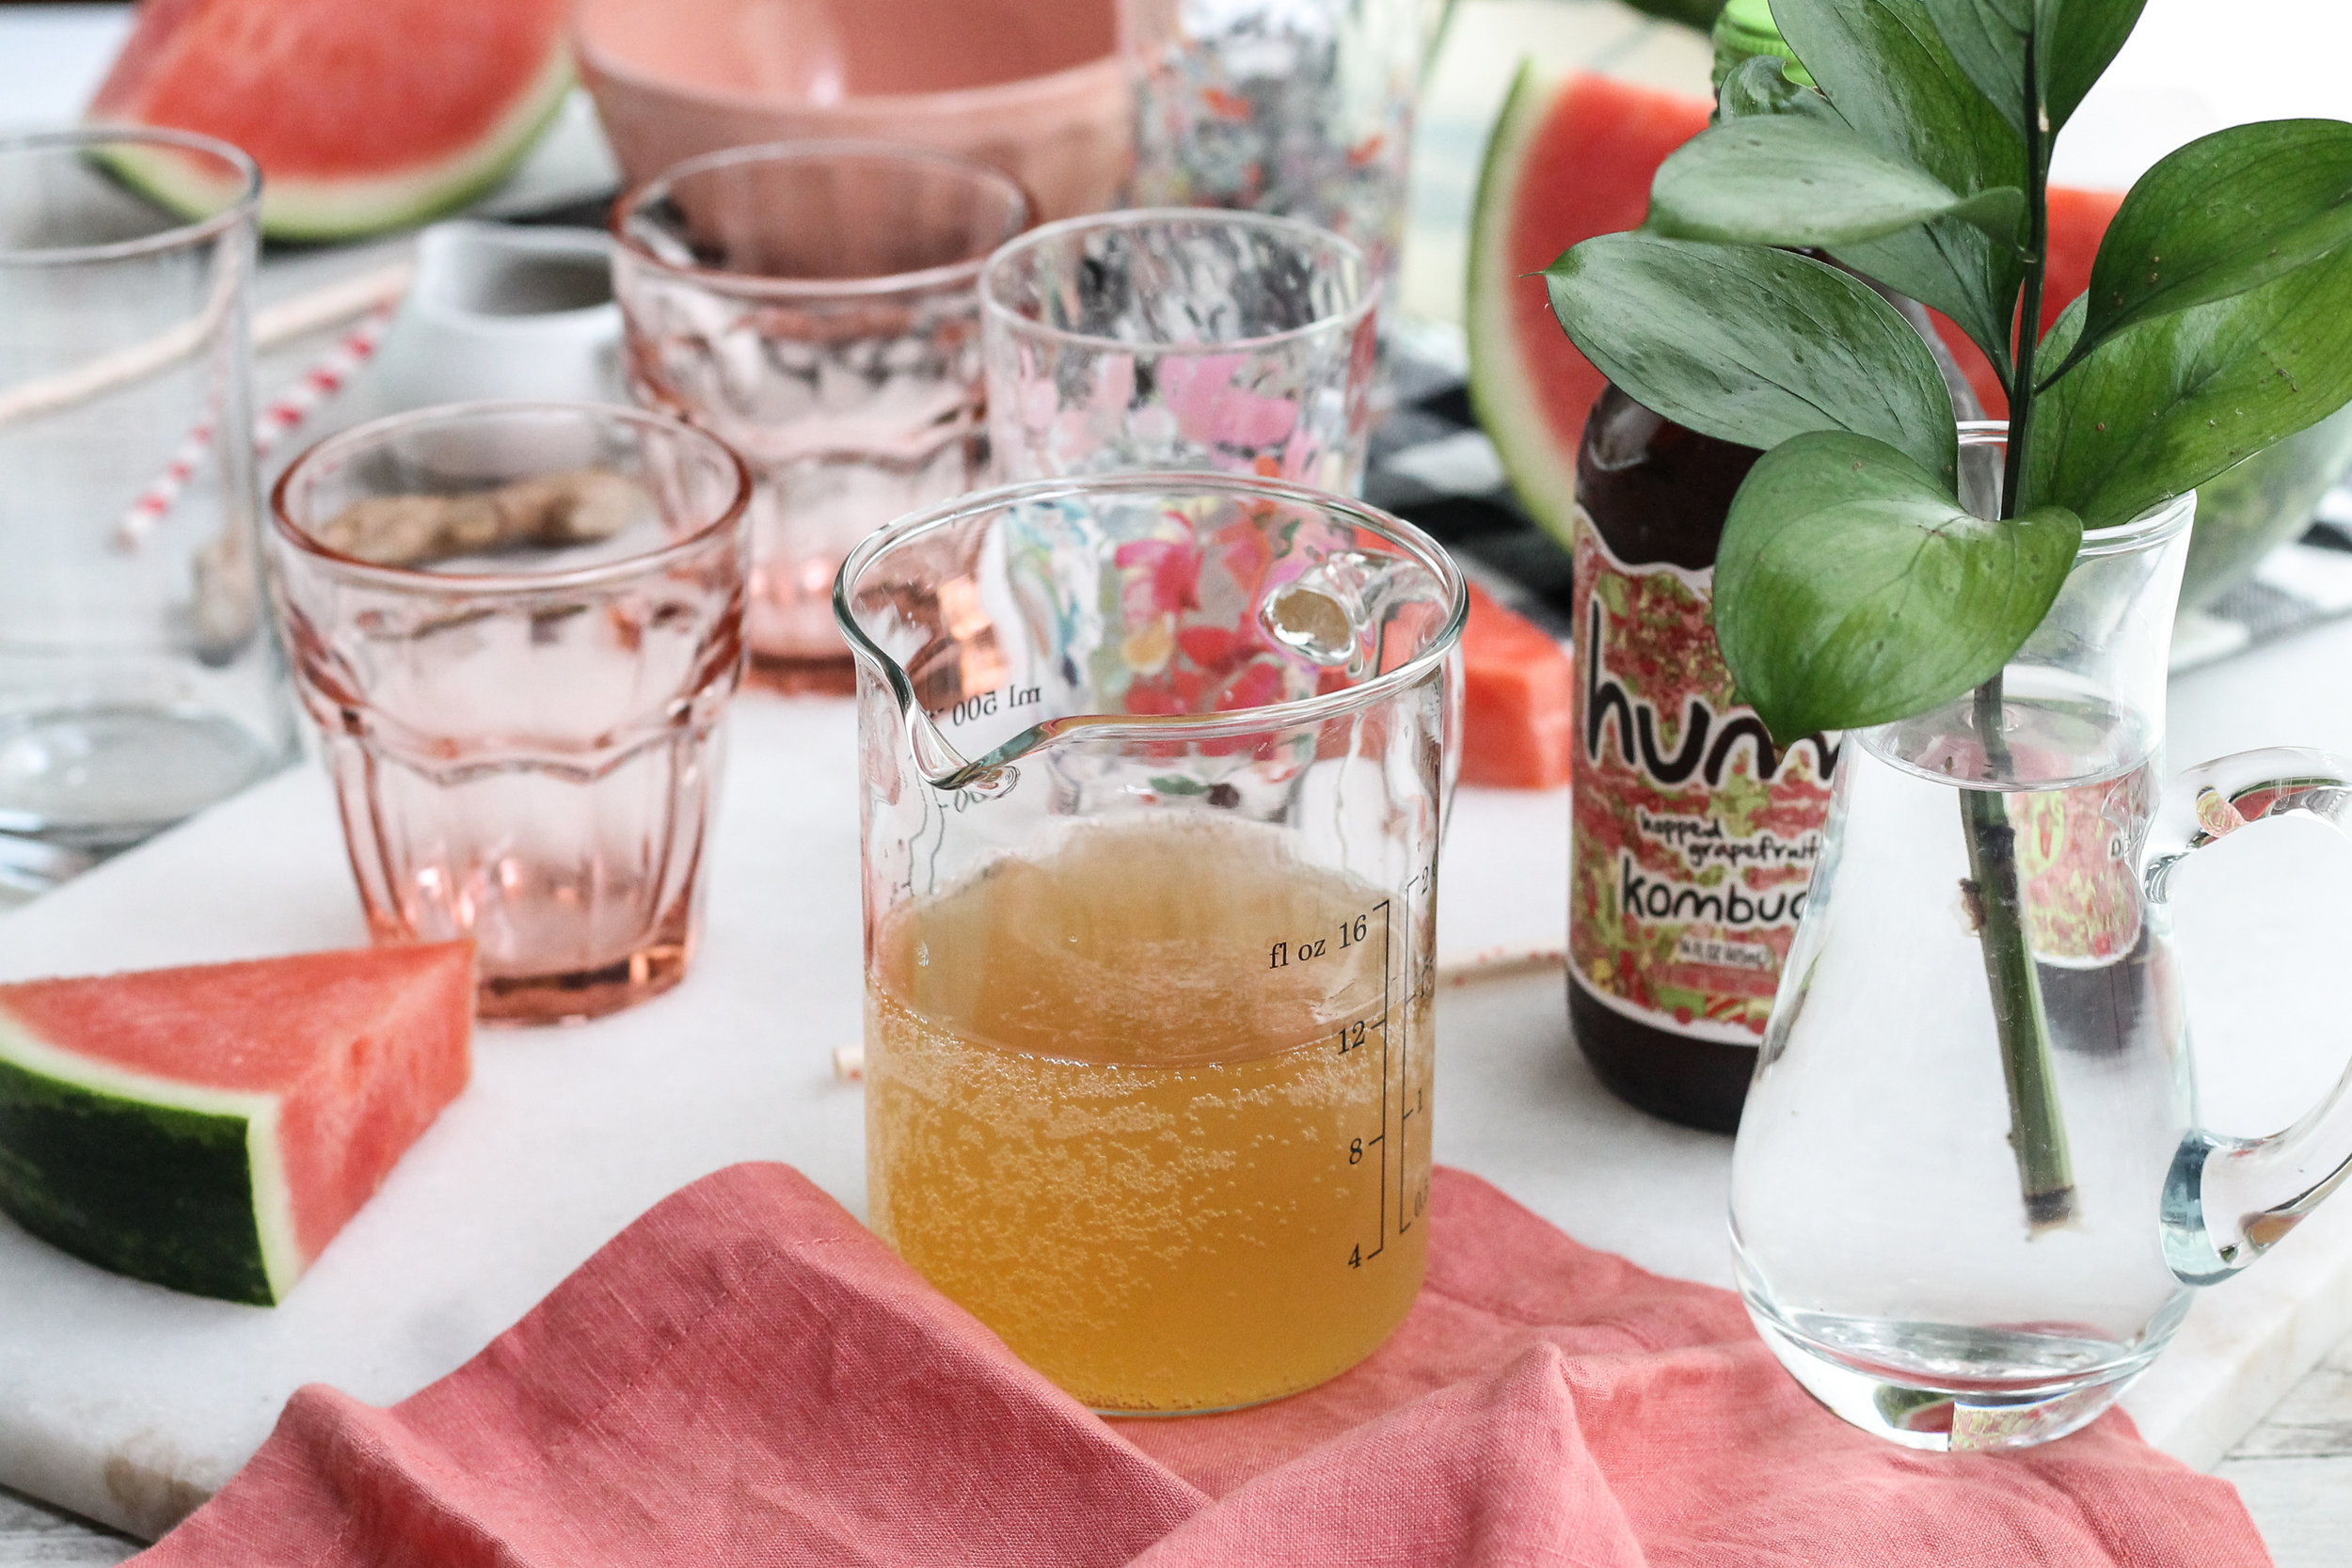 xThis faintly-sweet watermelon kombucha slush is the perfect mocktail for summer afternoons! [ www.pedanticfoodie.com ]